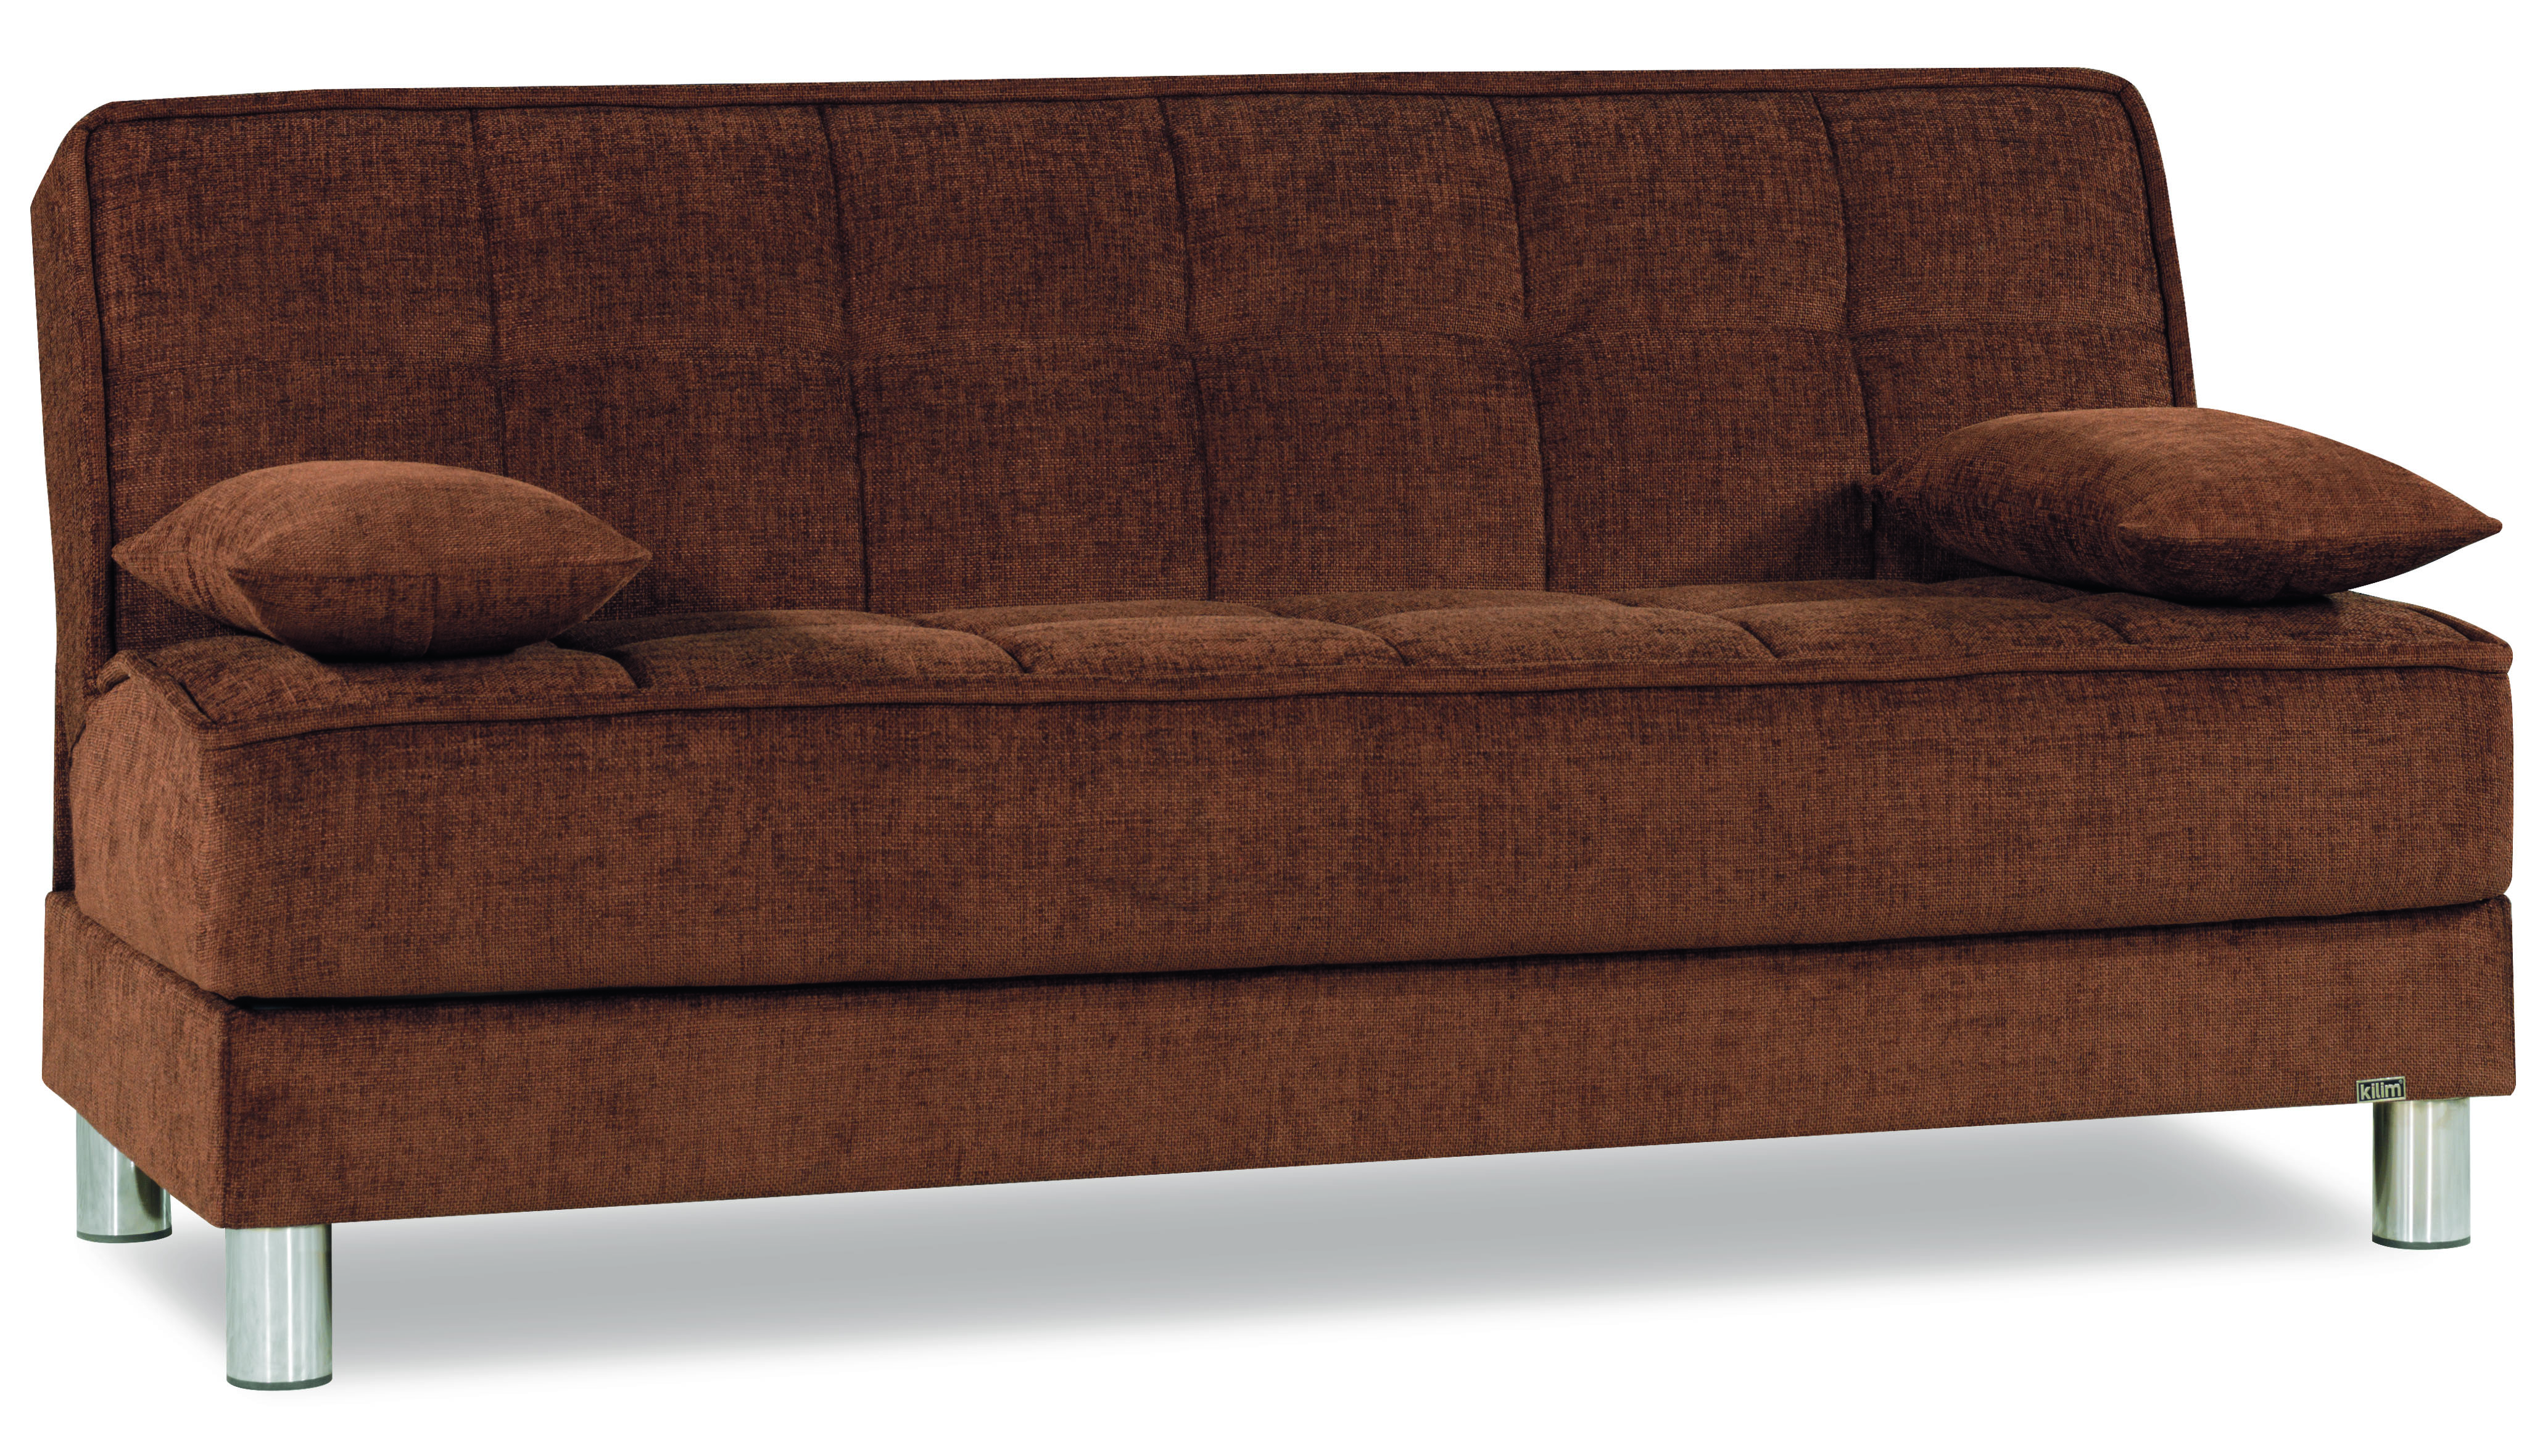 Smart Fit Brown Convertible Sofa by Casamode